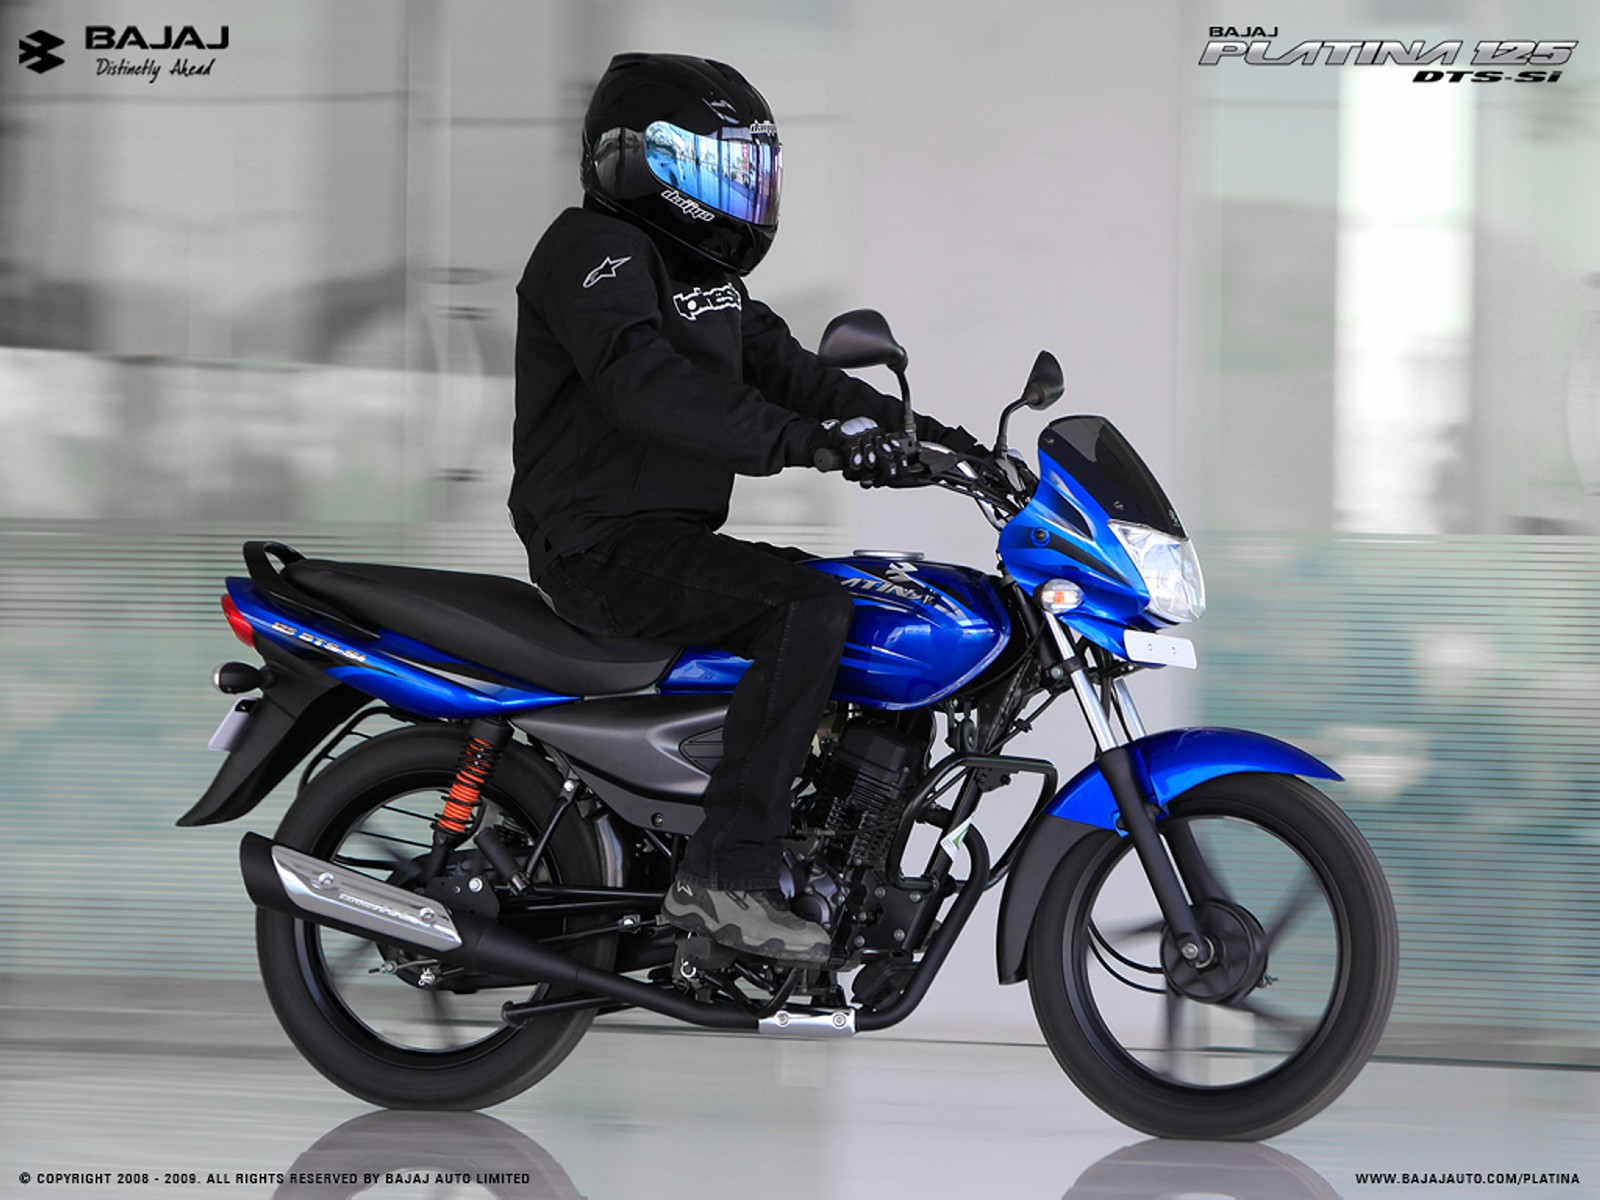 With The Launch Of 2015 Platina Bajaj Aims To Reach 24 Percent Increase In Market Share Along Monthly Sales Around 80000 Units